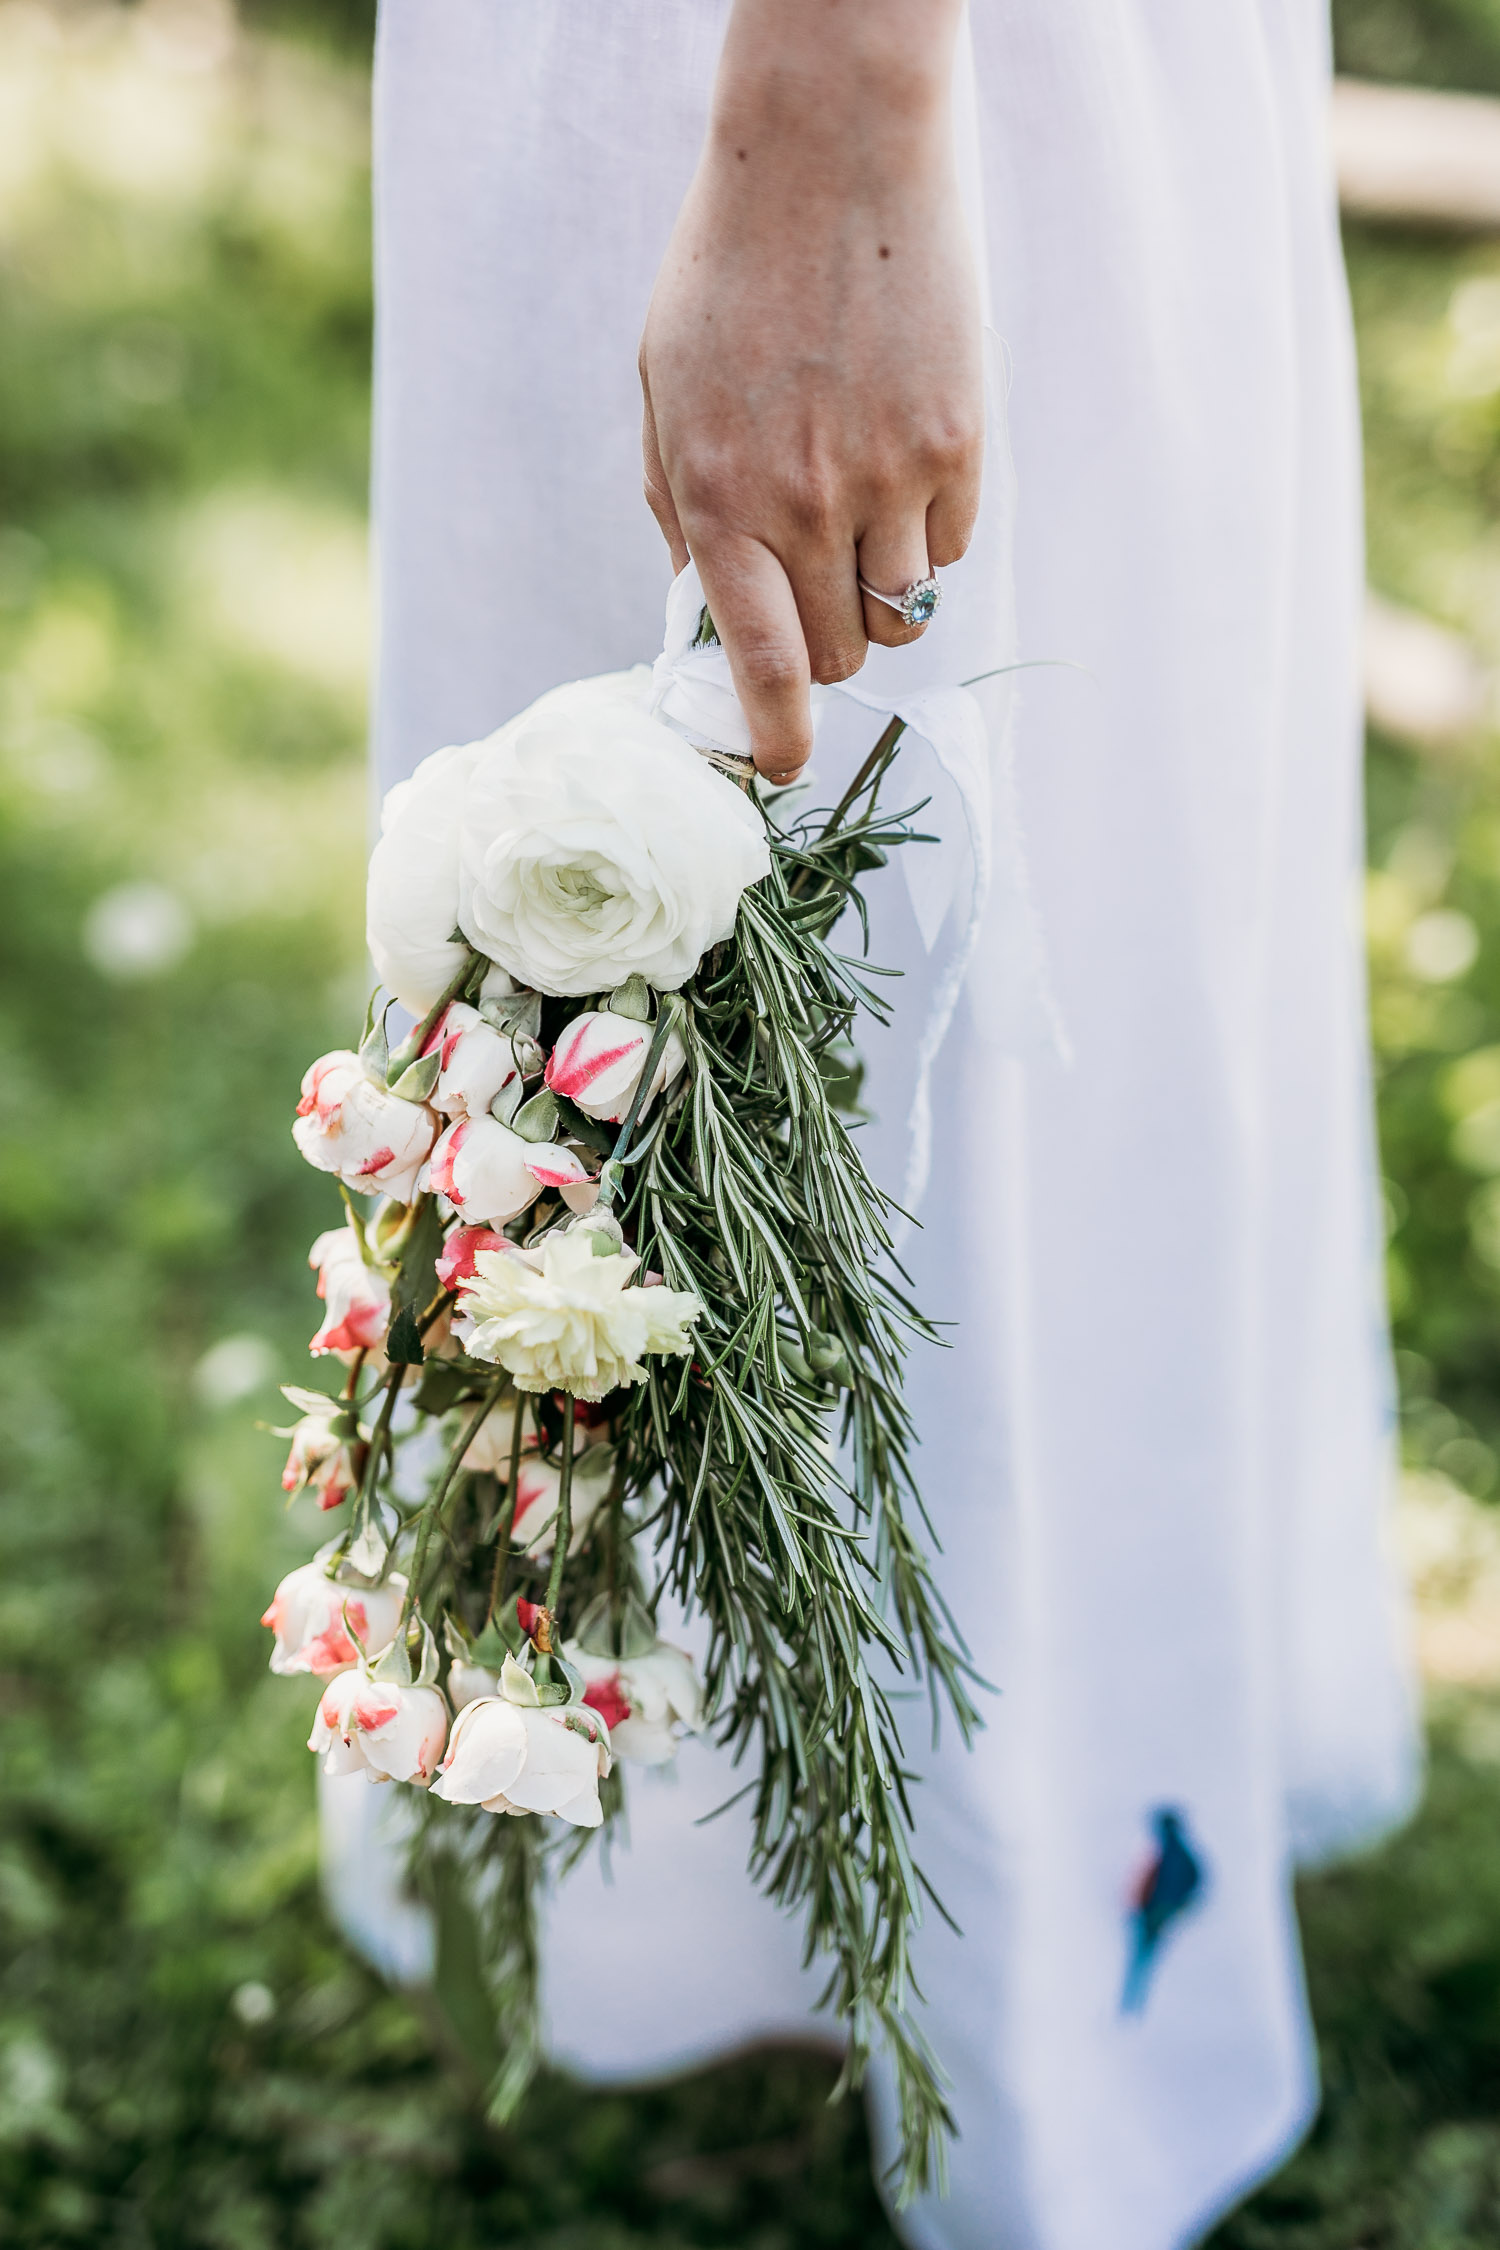 Simple bouquet with rosemary for a boho bride without shoes